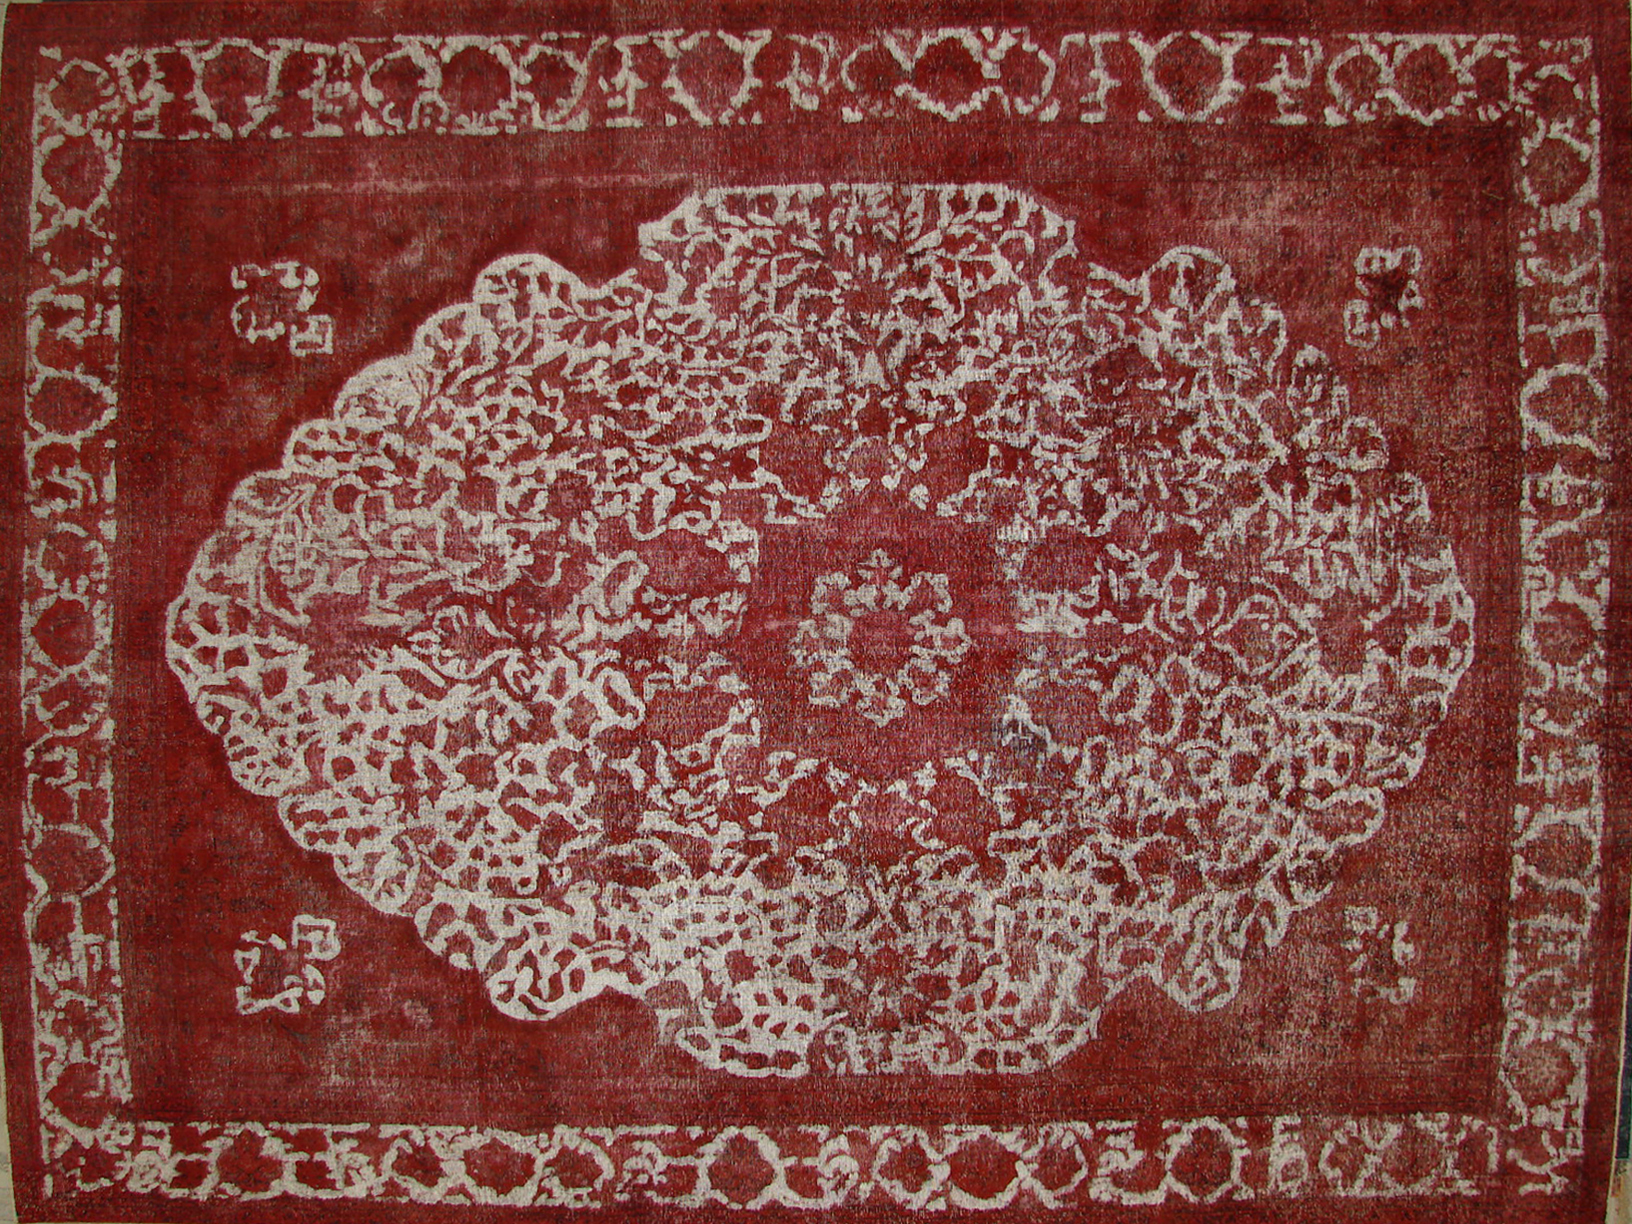 10x14 Vintage Hand Knotted Wool Area Rug - MR19270